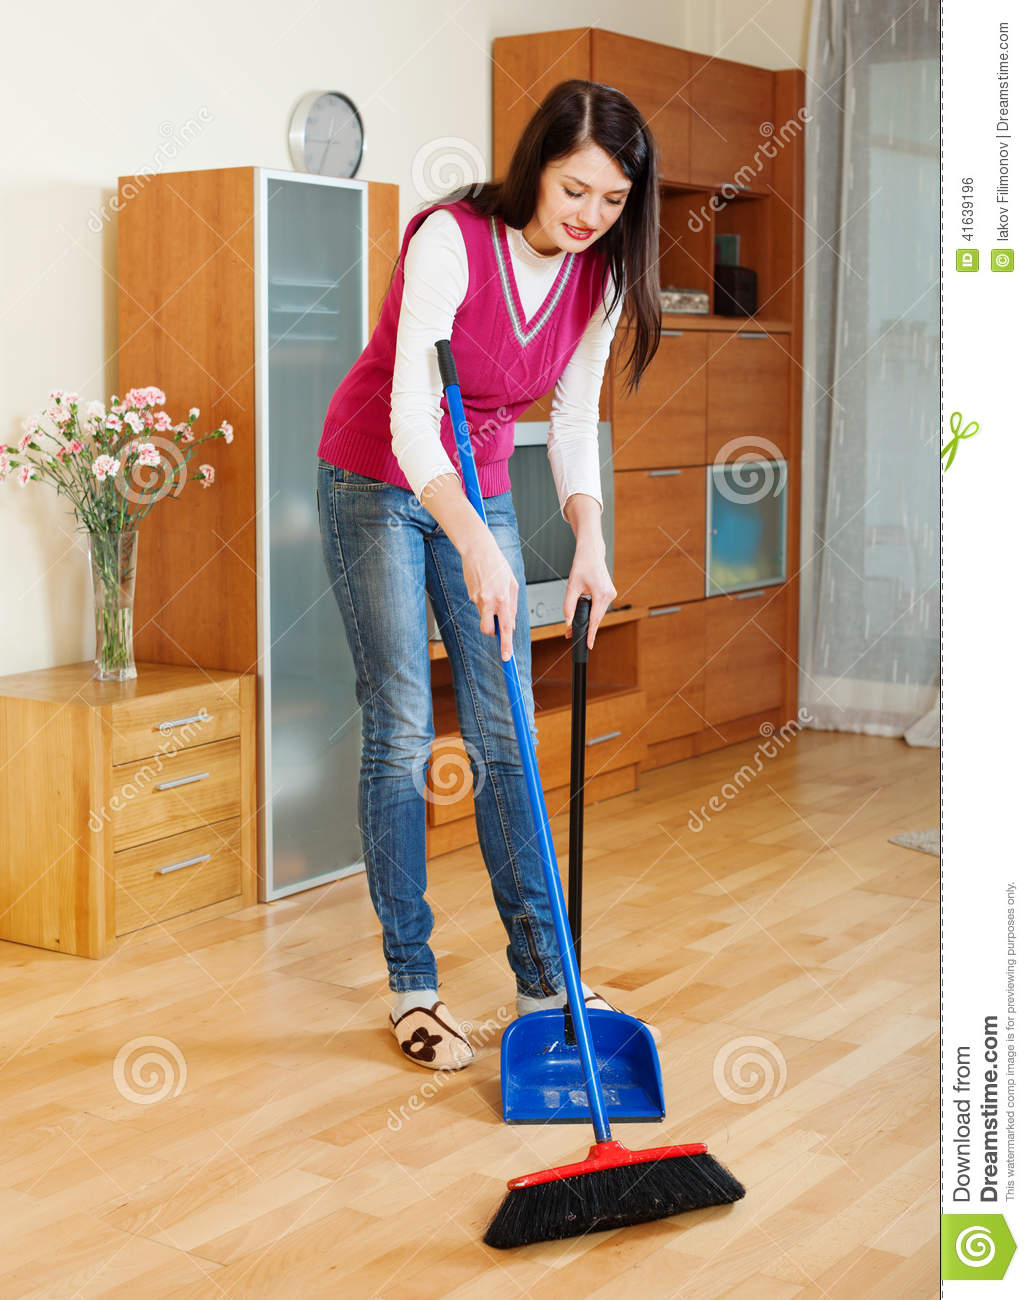 Brunette Woman Sweeping The Floor Stock Photo Image